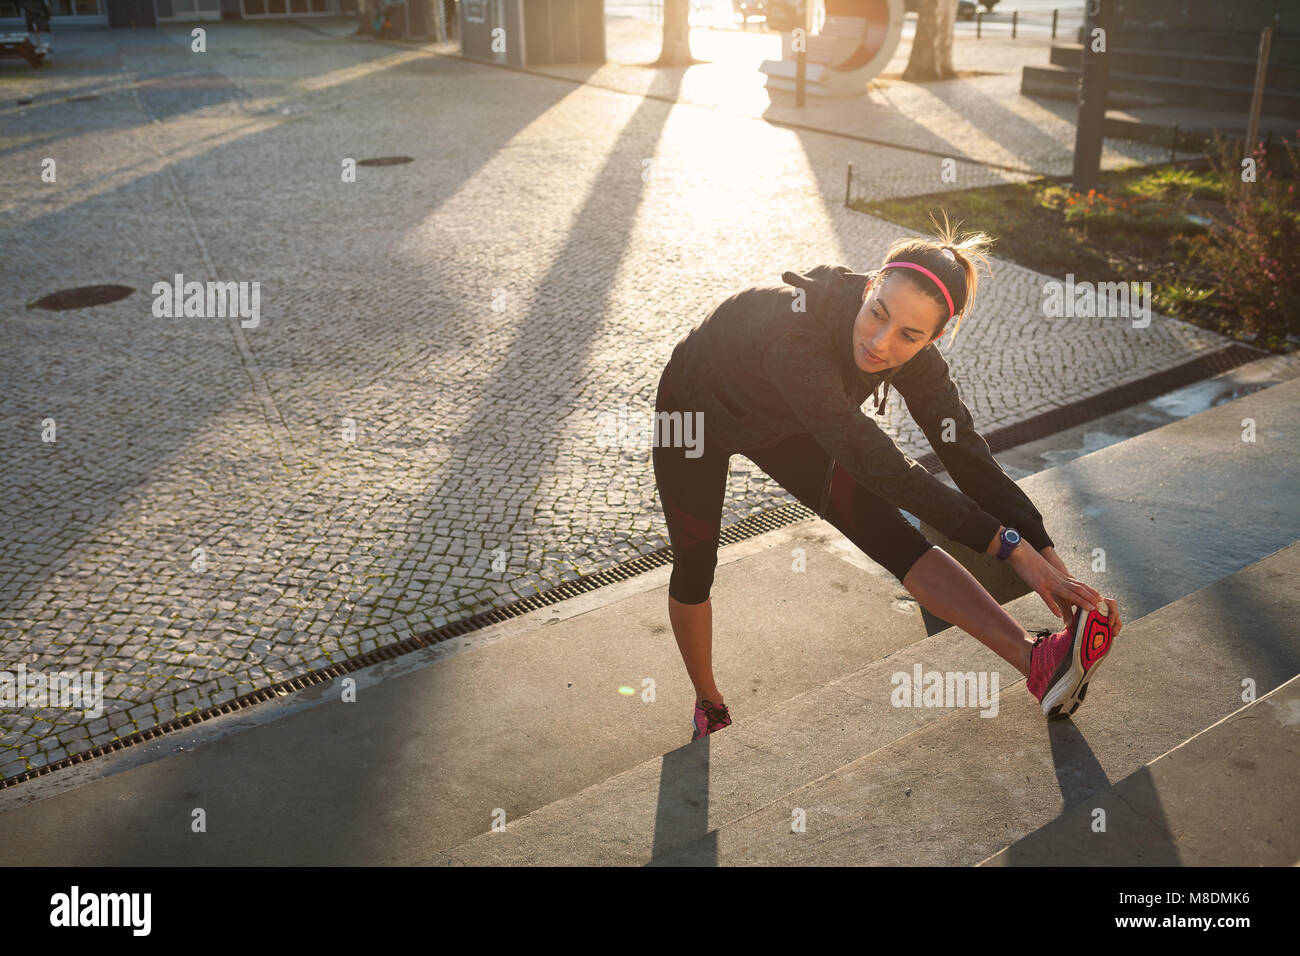 Young woman warming up, stretching legs - Stock Image